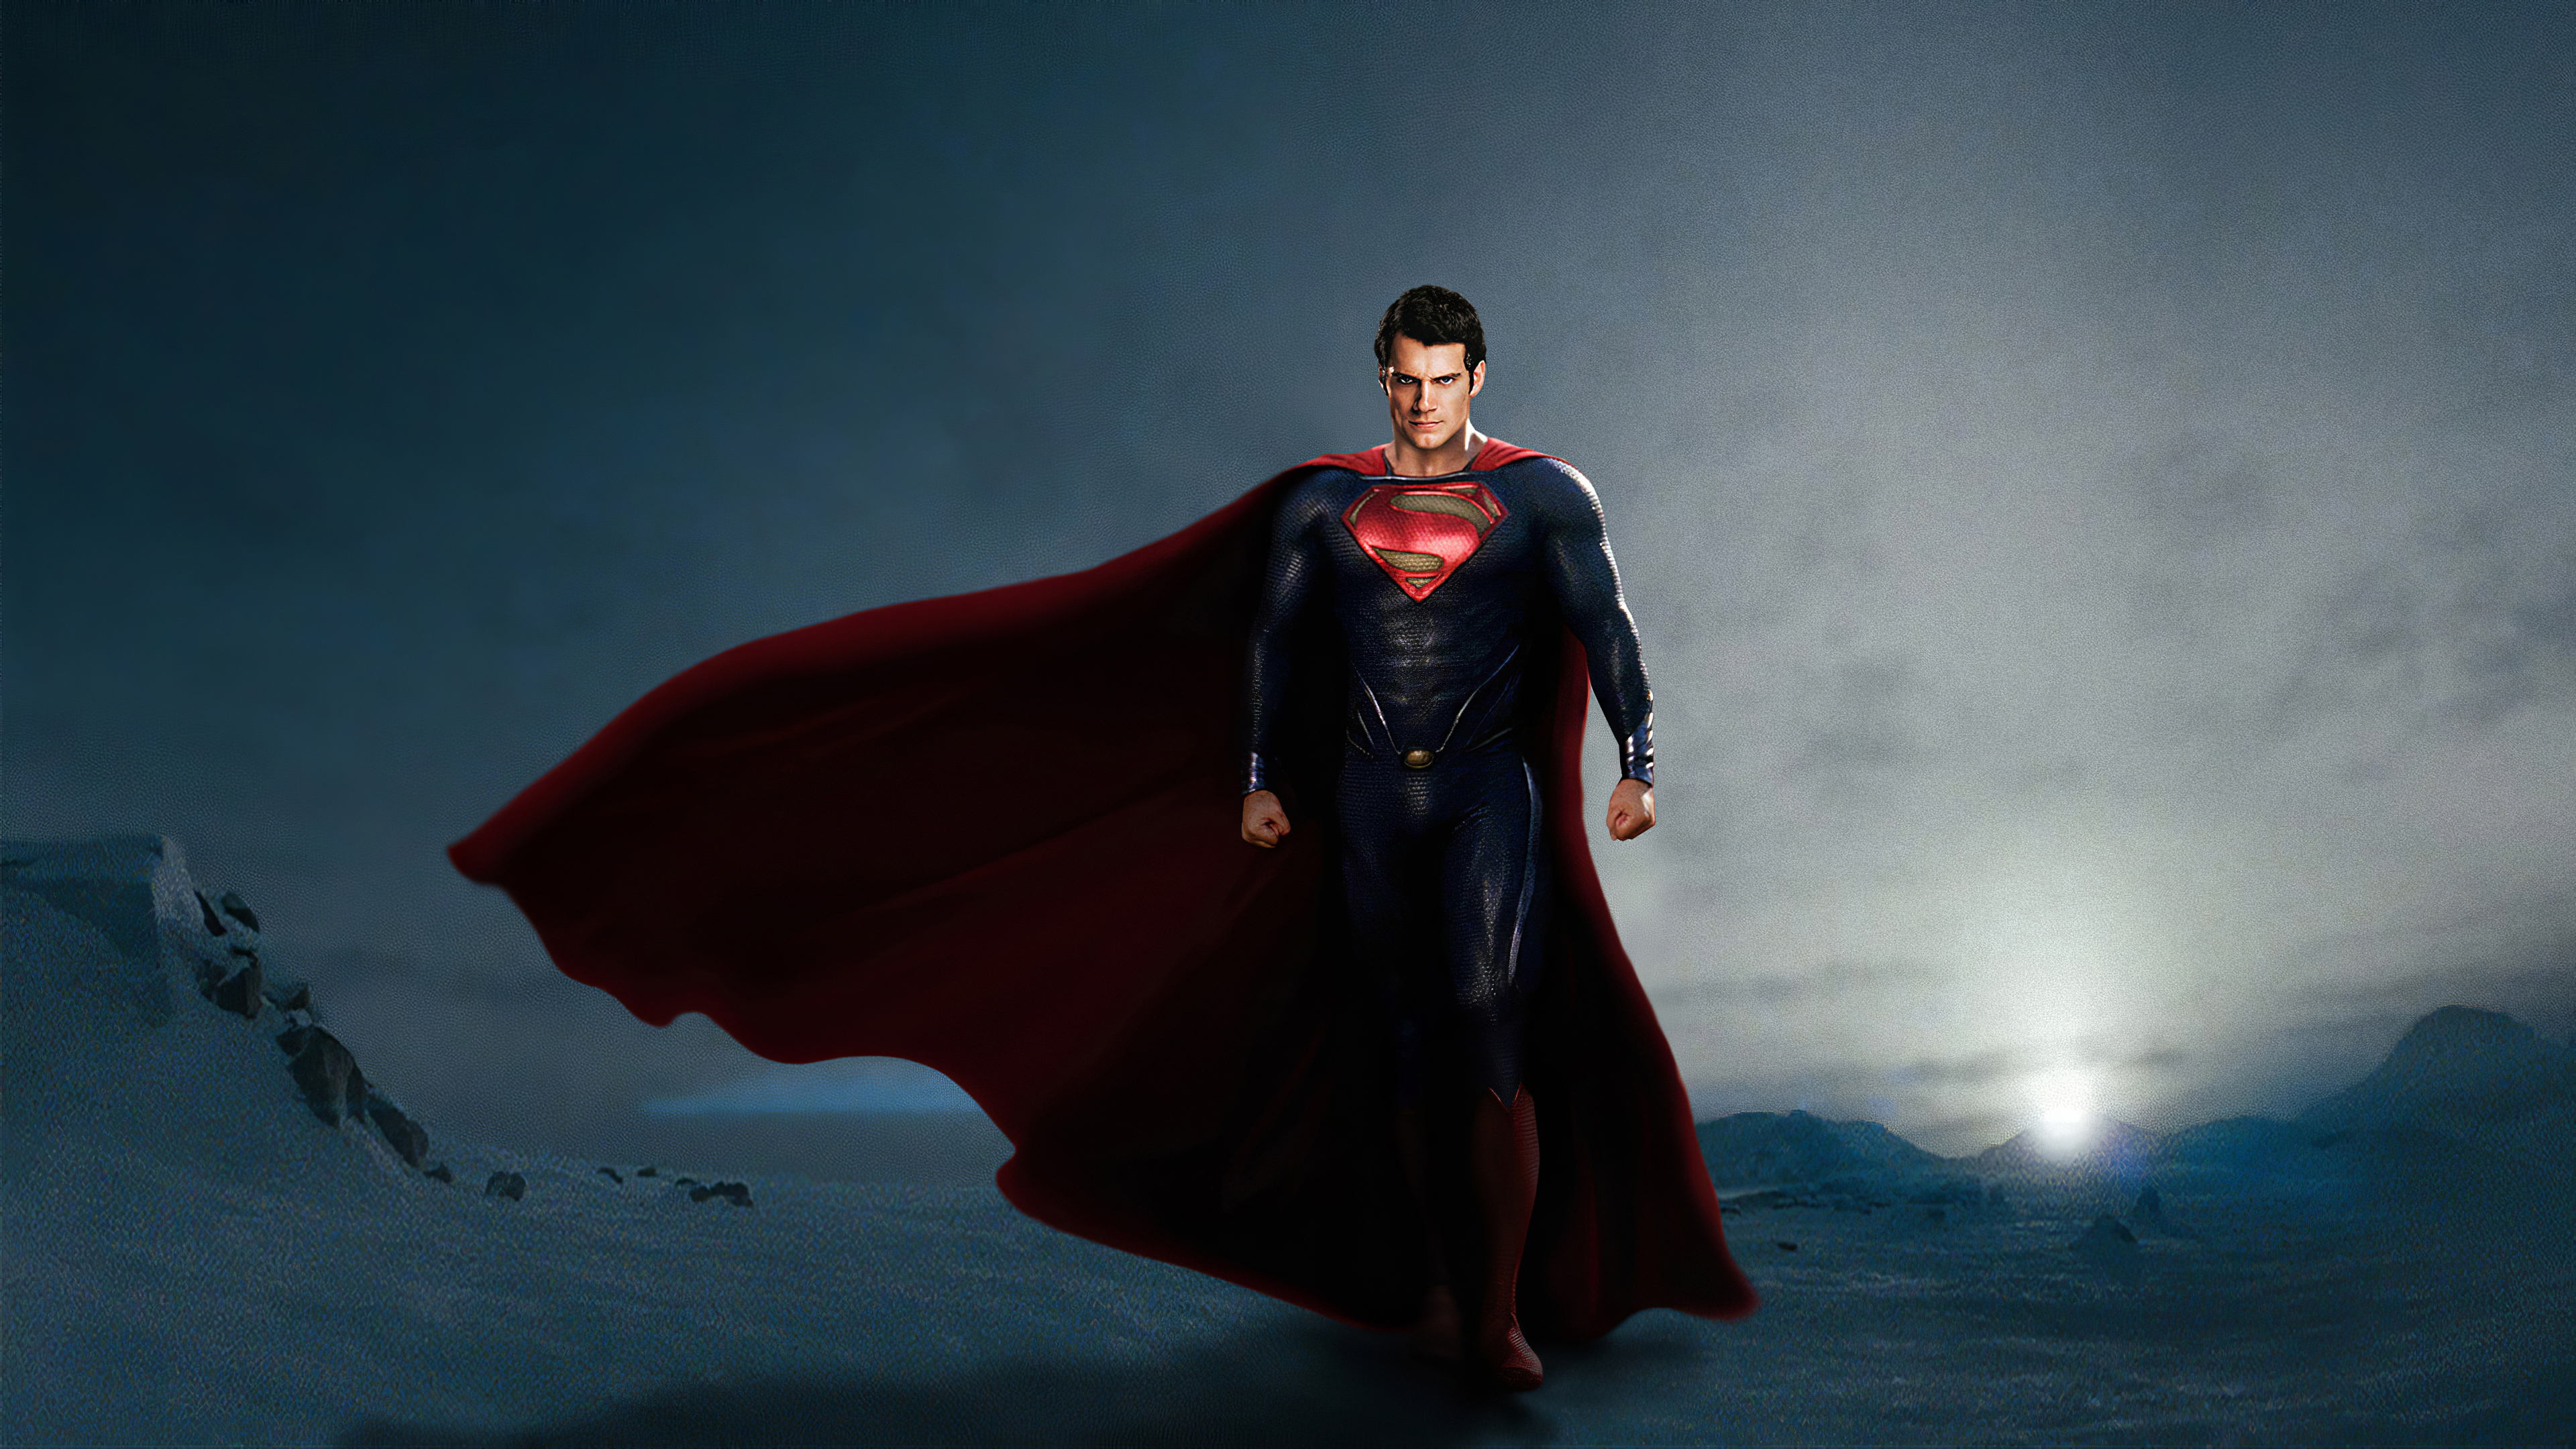 Wallpaper Henry Cavill as Superman